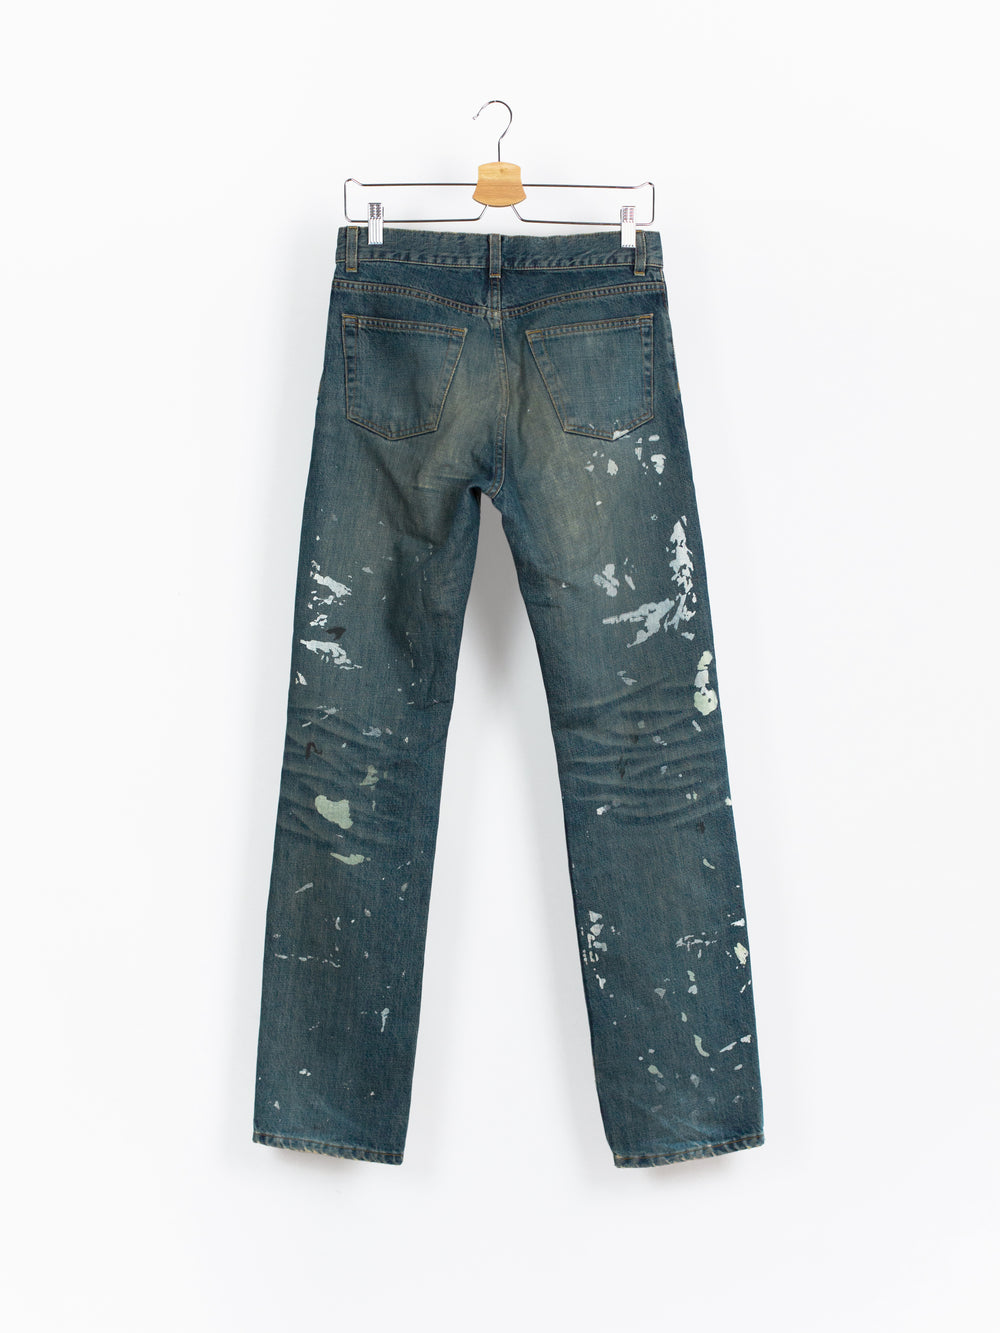 Helmut Lang 1998 Painter Denim